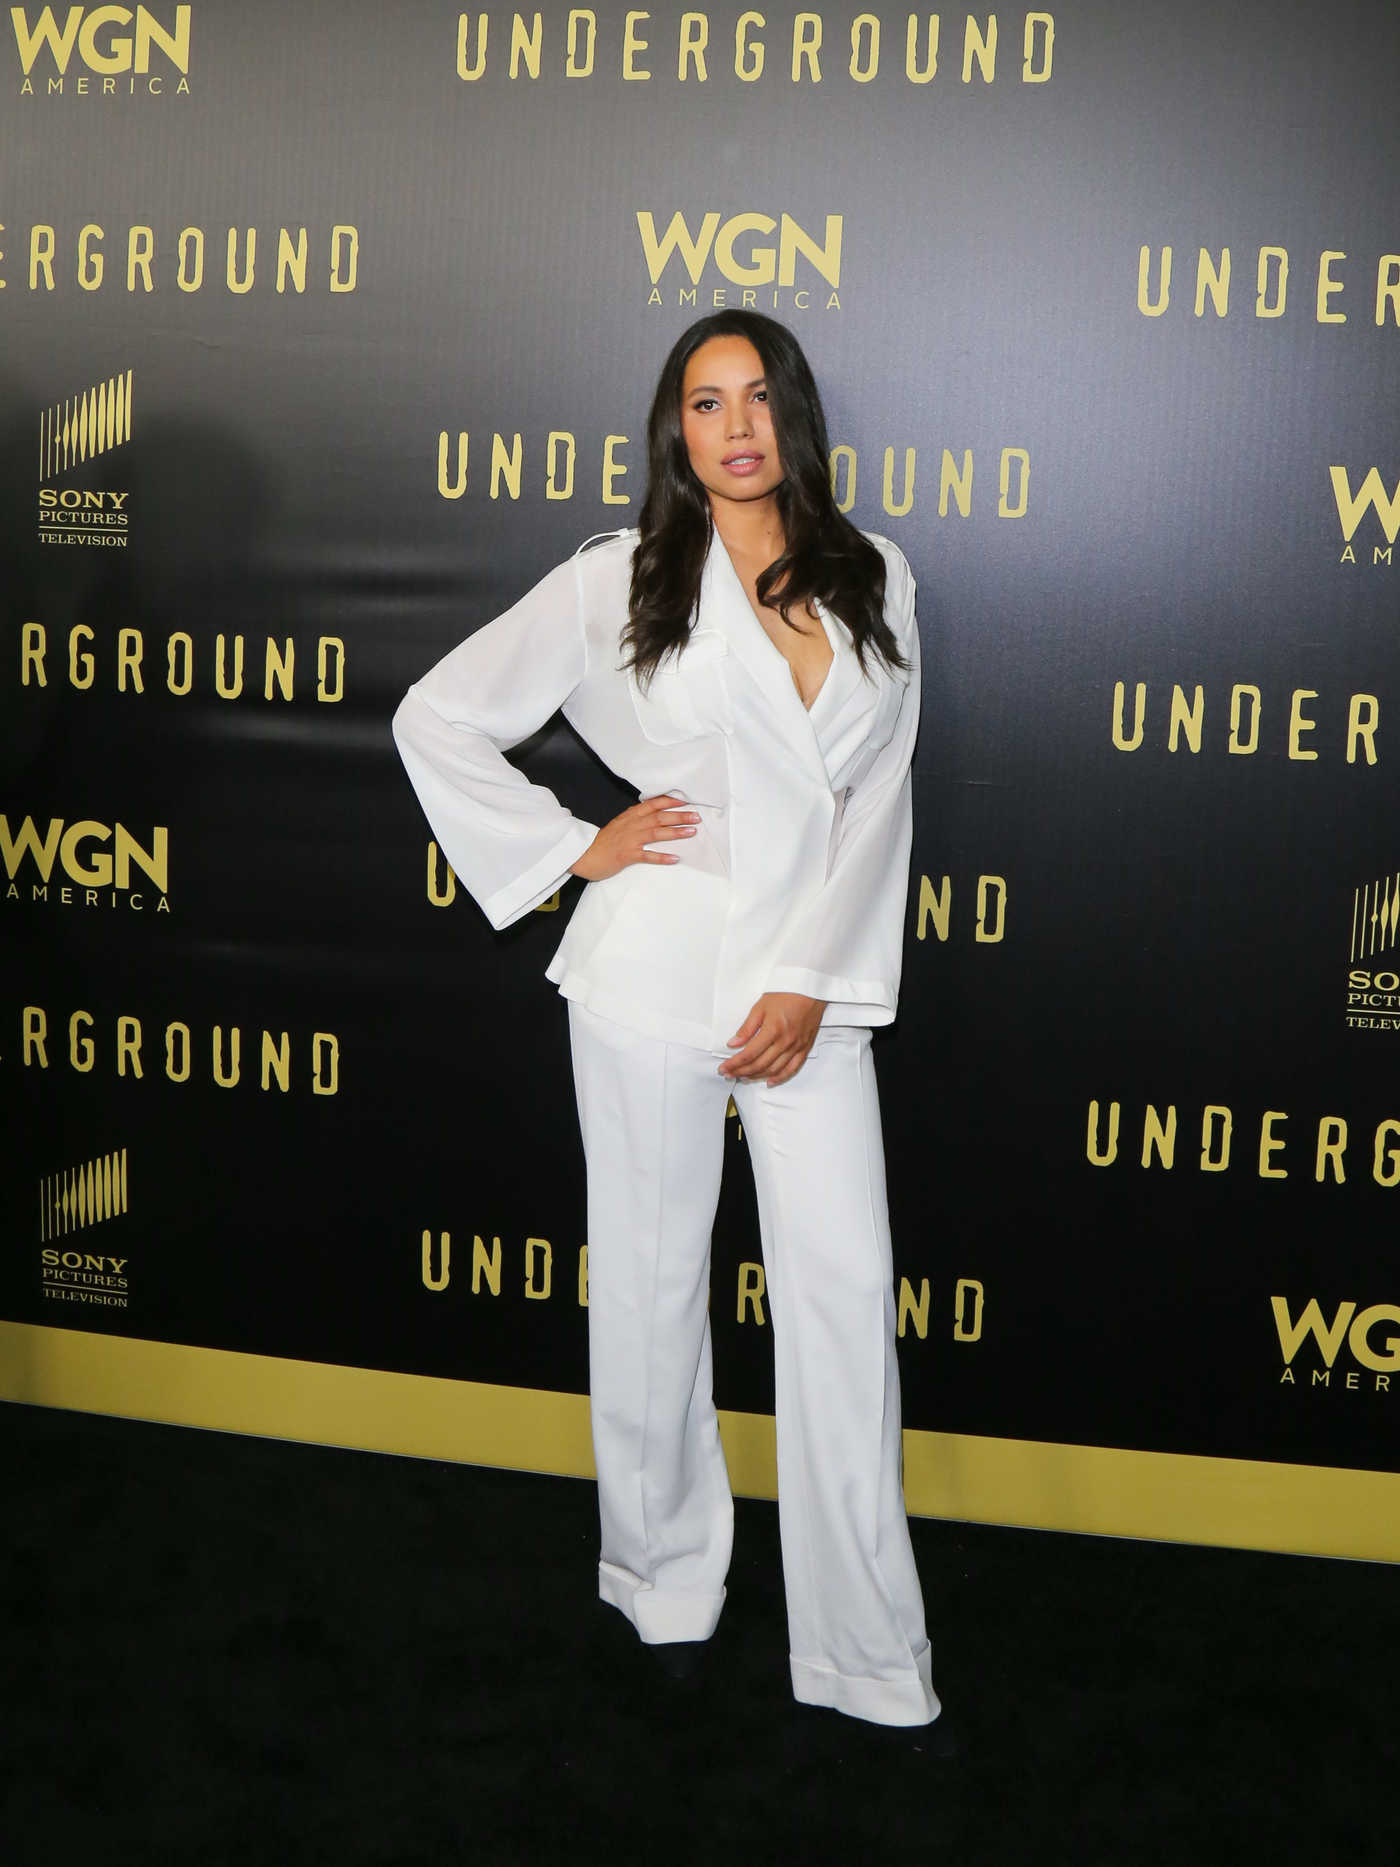 Jurnee Smollett-Bell Attends For Your Consideration Event for Underground in Los Angeles 05/02/2017